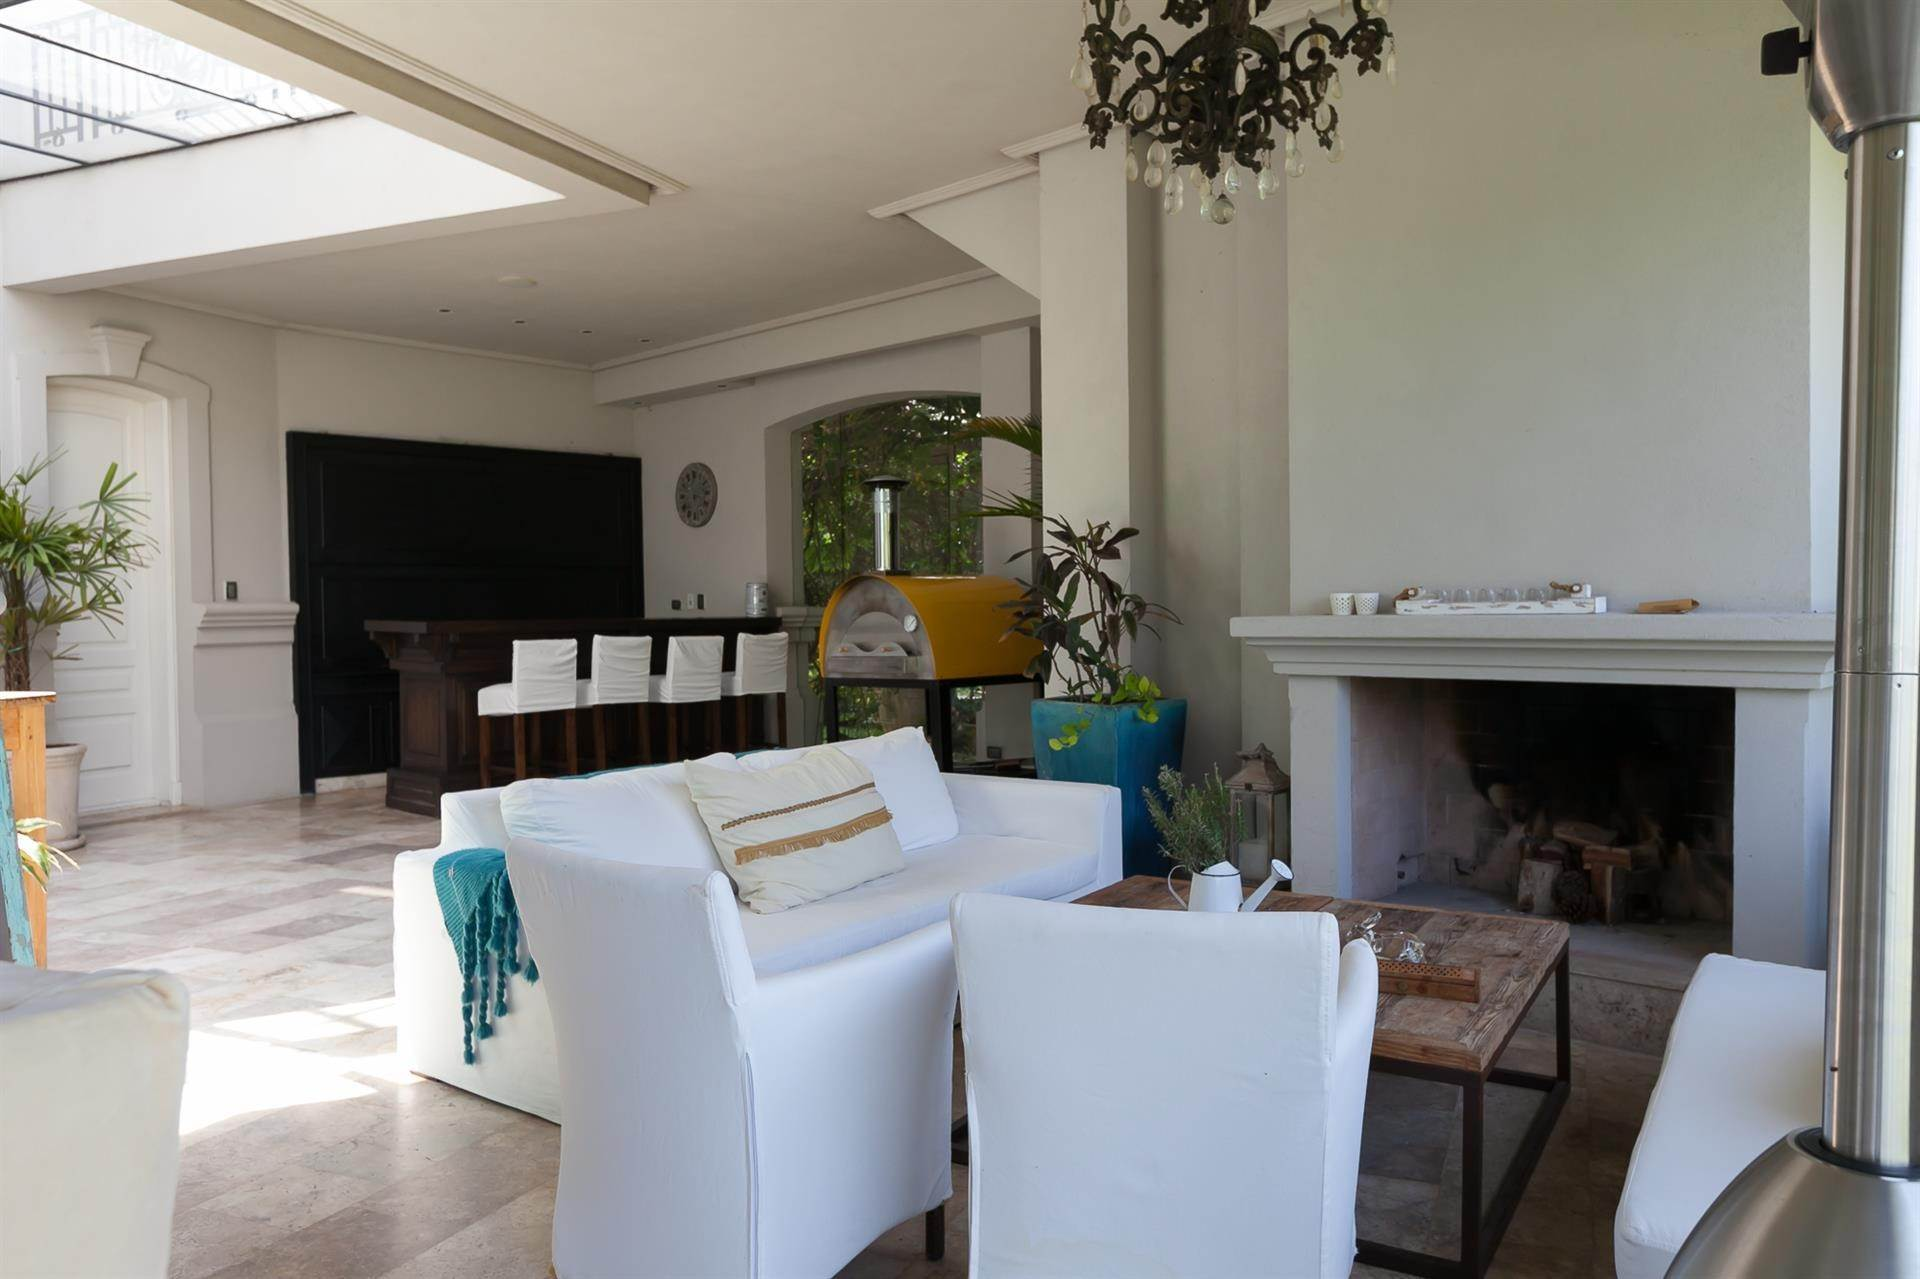 33. Single Family Home for Sale at Incredible house in La Isla, Nordelta Tigre, Argentina